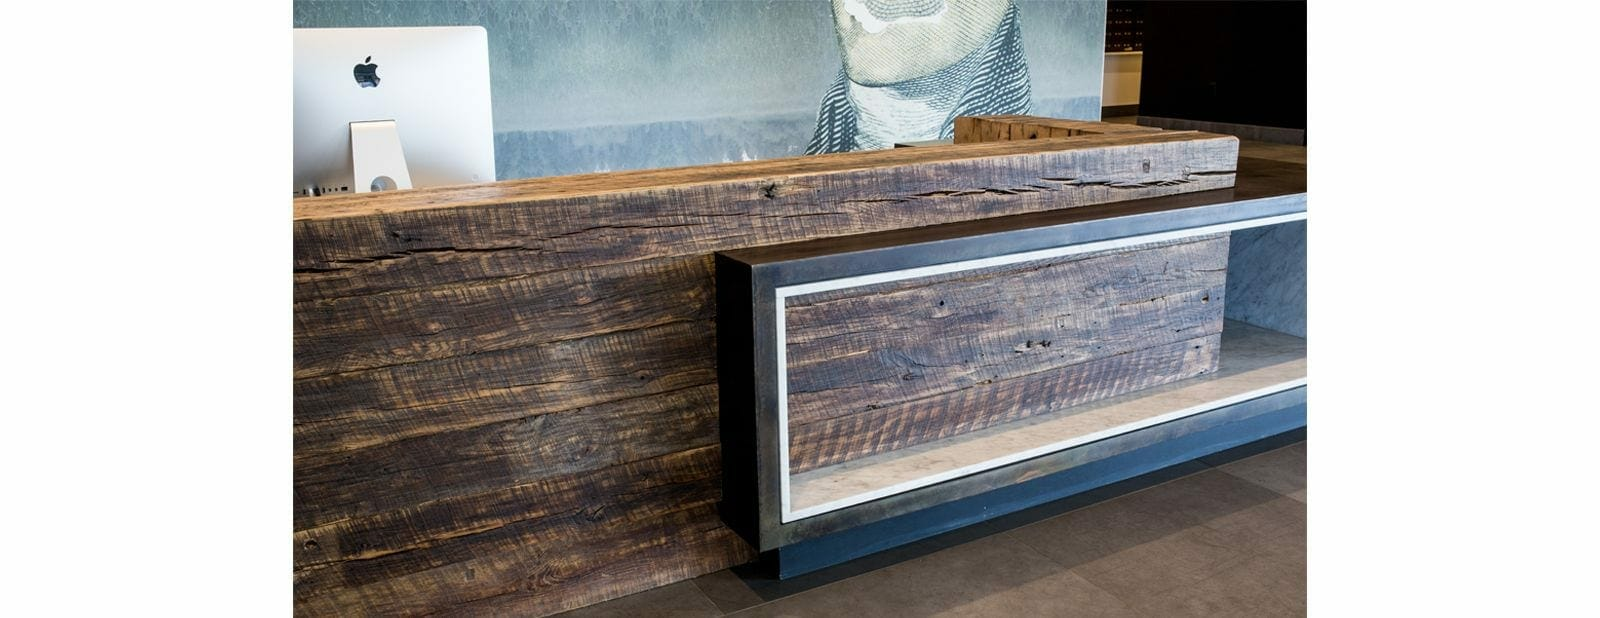 presidential city jefferson reception desk